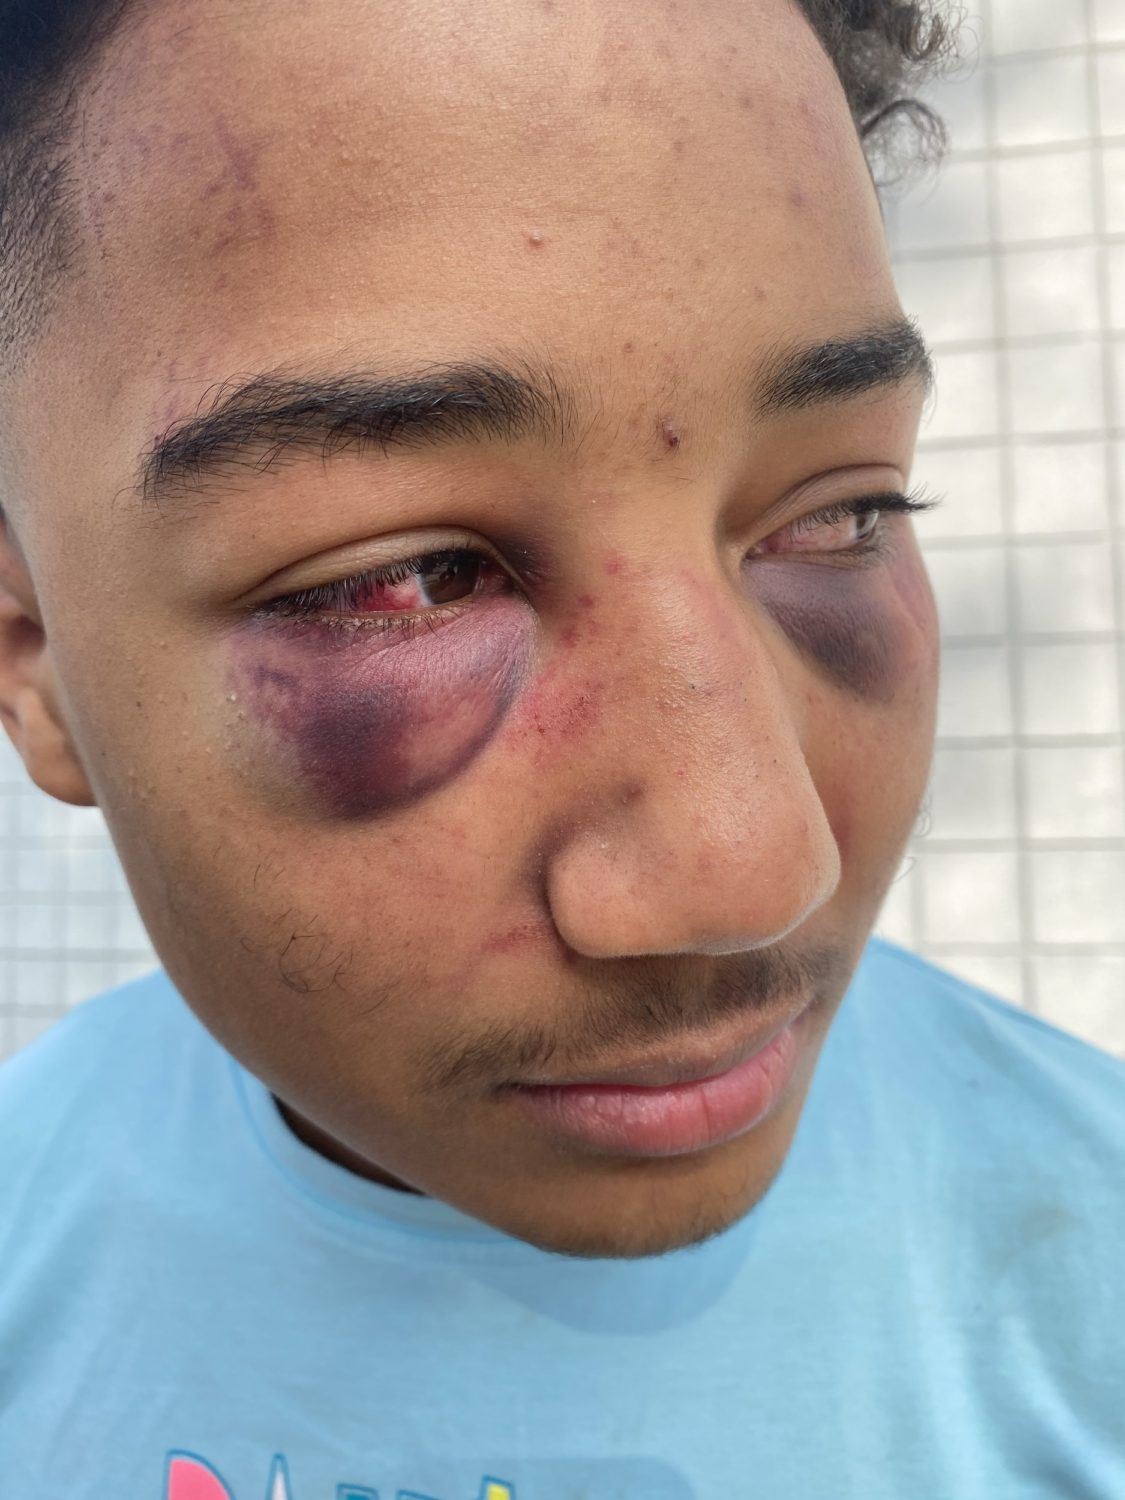 Devin-Carter-17-after-Stockton-cops-beating-123020, John Burris on the indictment of two Stockton cops for viciously beating Devin Carter, 17, Local News & Views